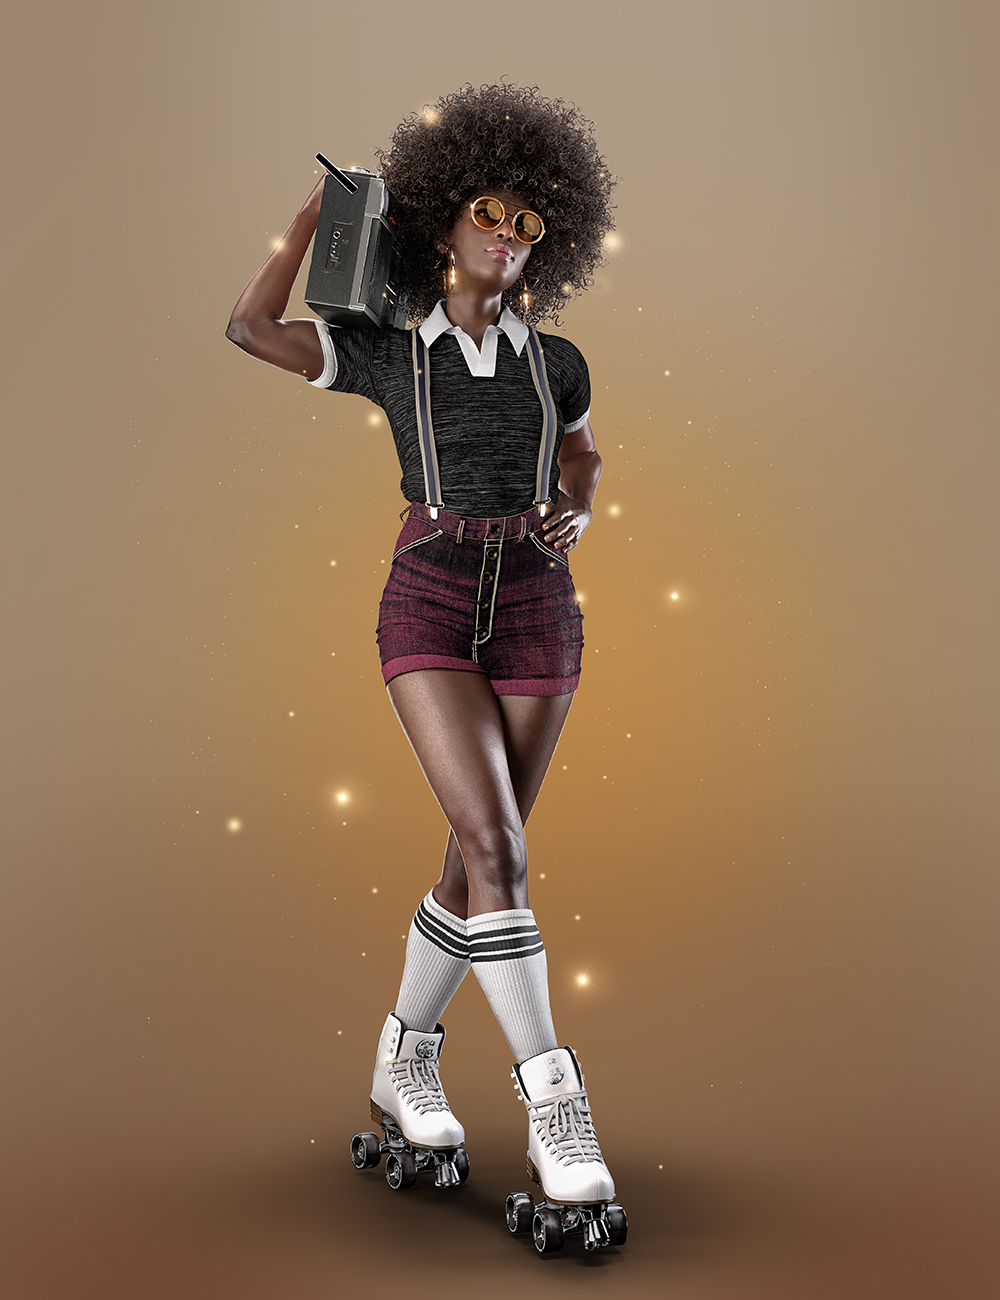 AJC Boogie Roller Girl Outfit and Boombox for Genesis 8 and 8.1 Females by: adeilsonjc, 3D Models by Daz 3D